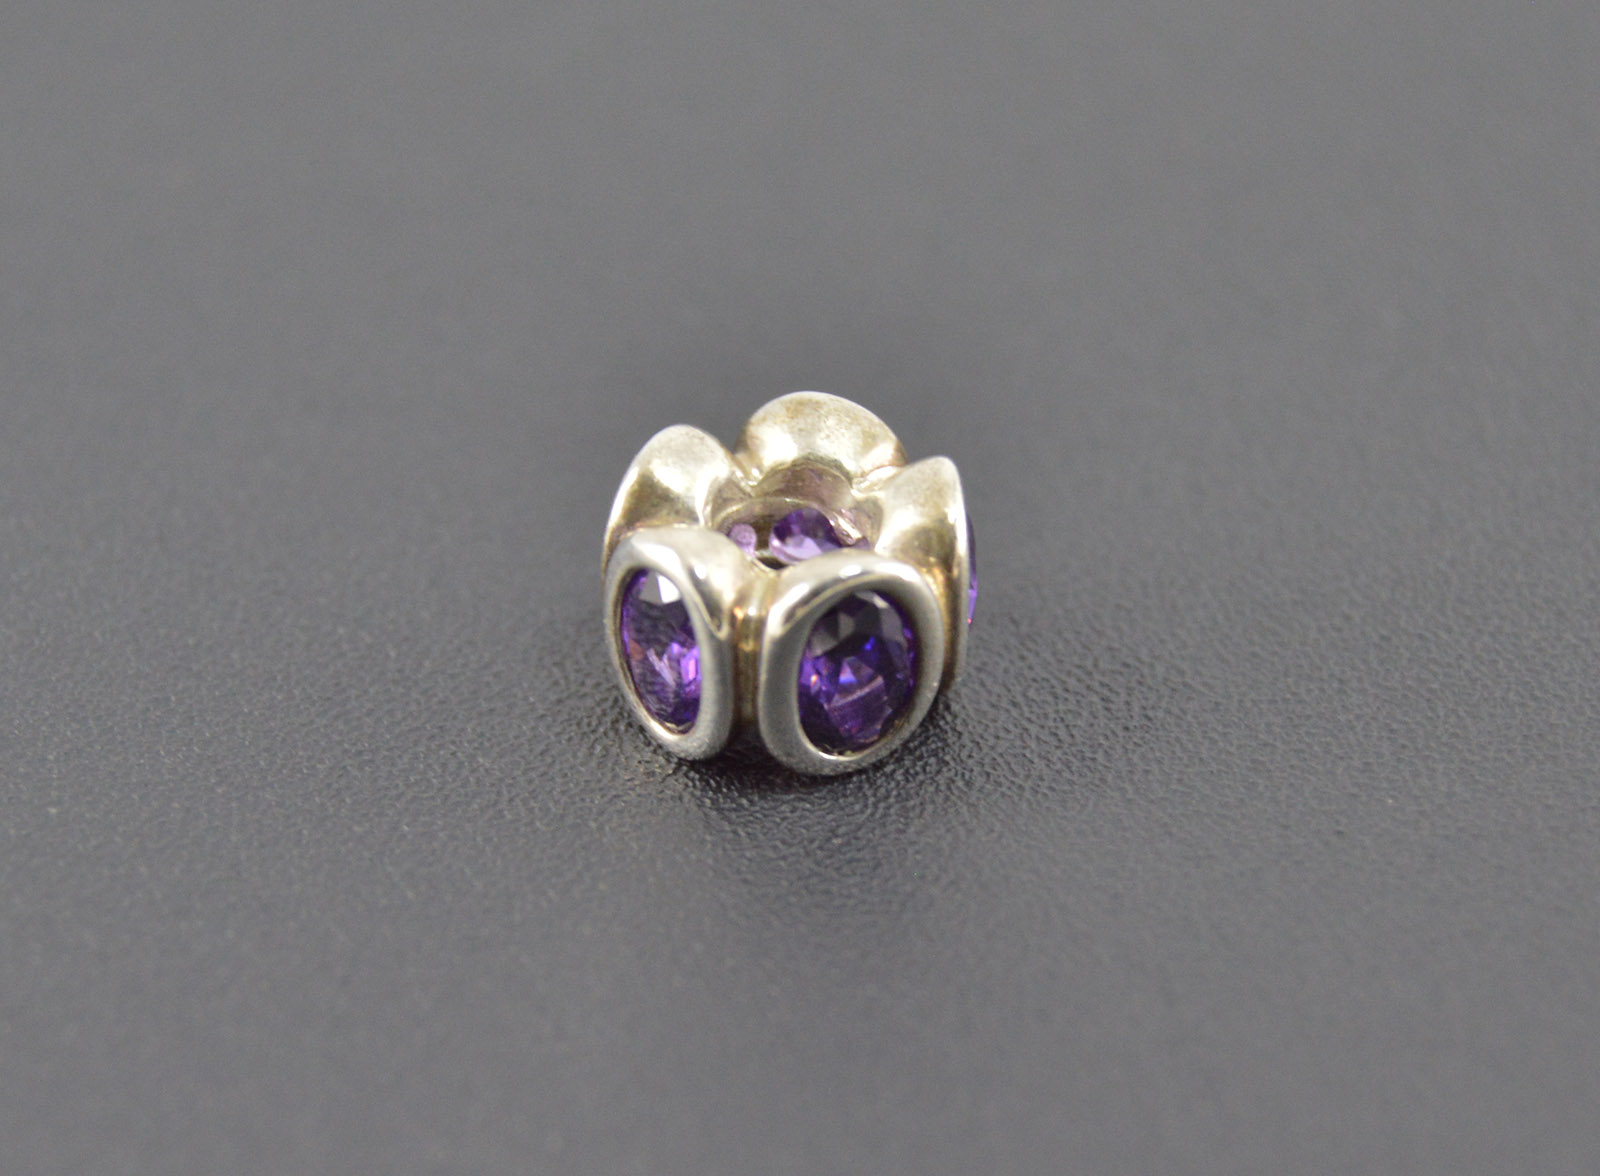 5d2b4ede1 3.1g Solid Silver Pandora High Retail Value Purple Bezel Set Oval  Collectable Bead Sterling Charm/Pendant Marked ALE 925